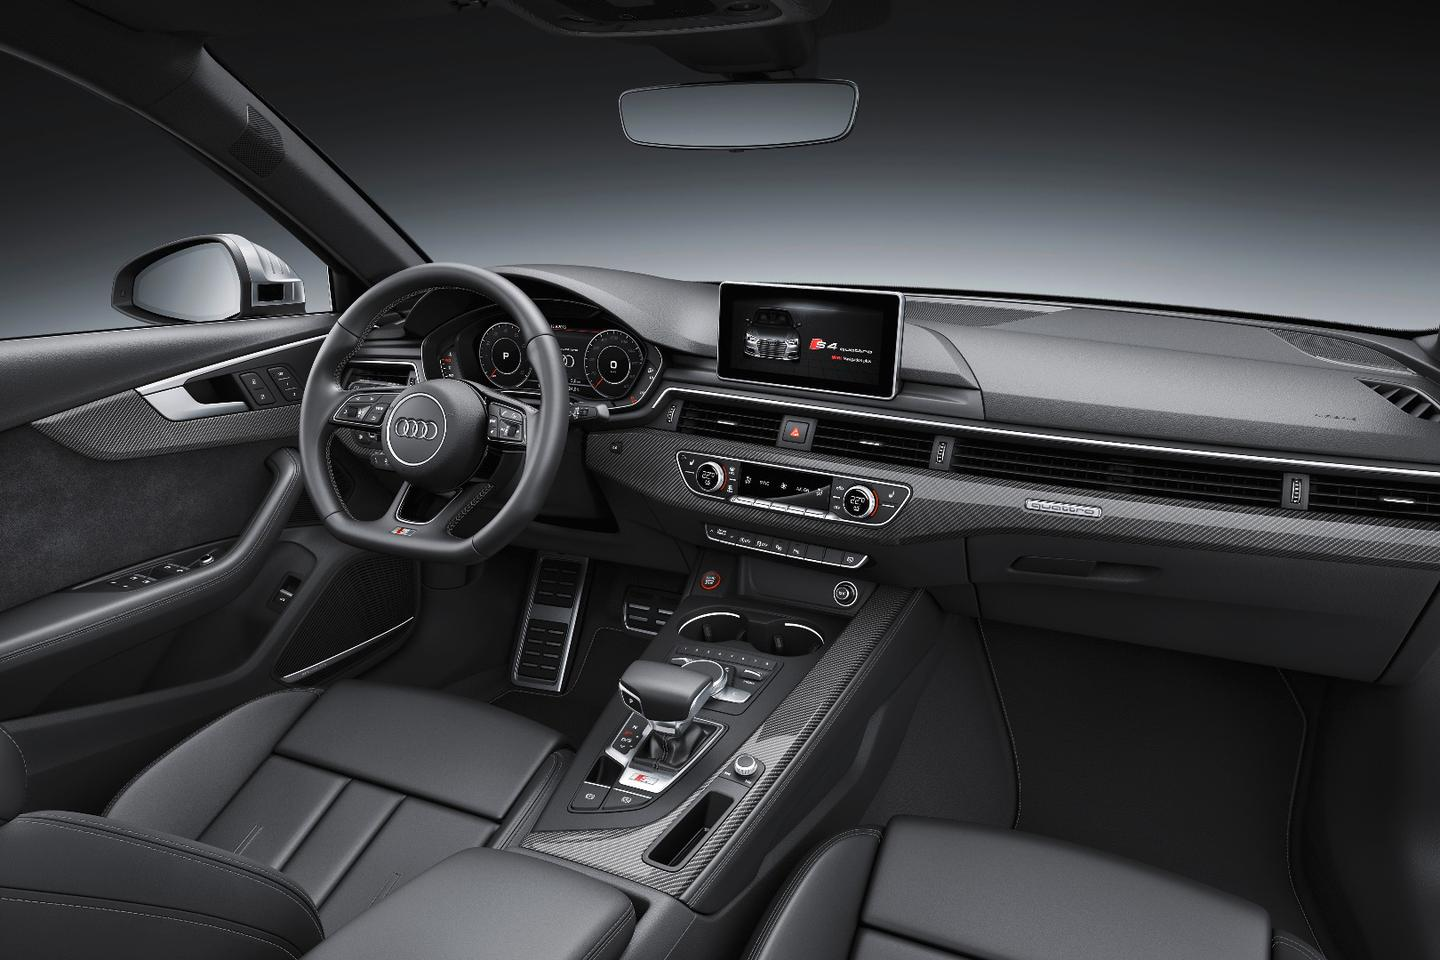 The S4's interior is hardly any different from the standard A4's